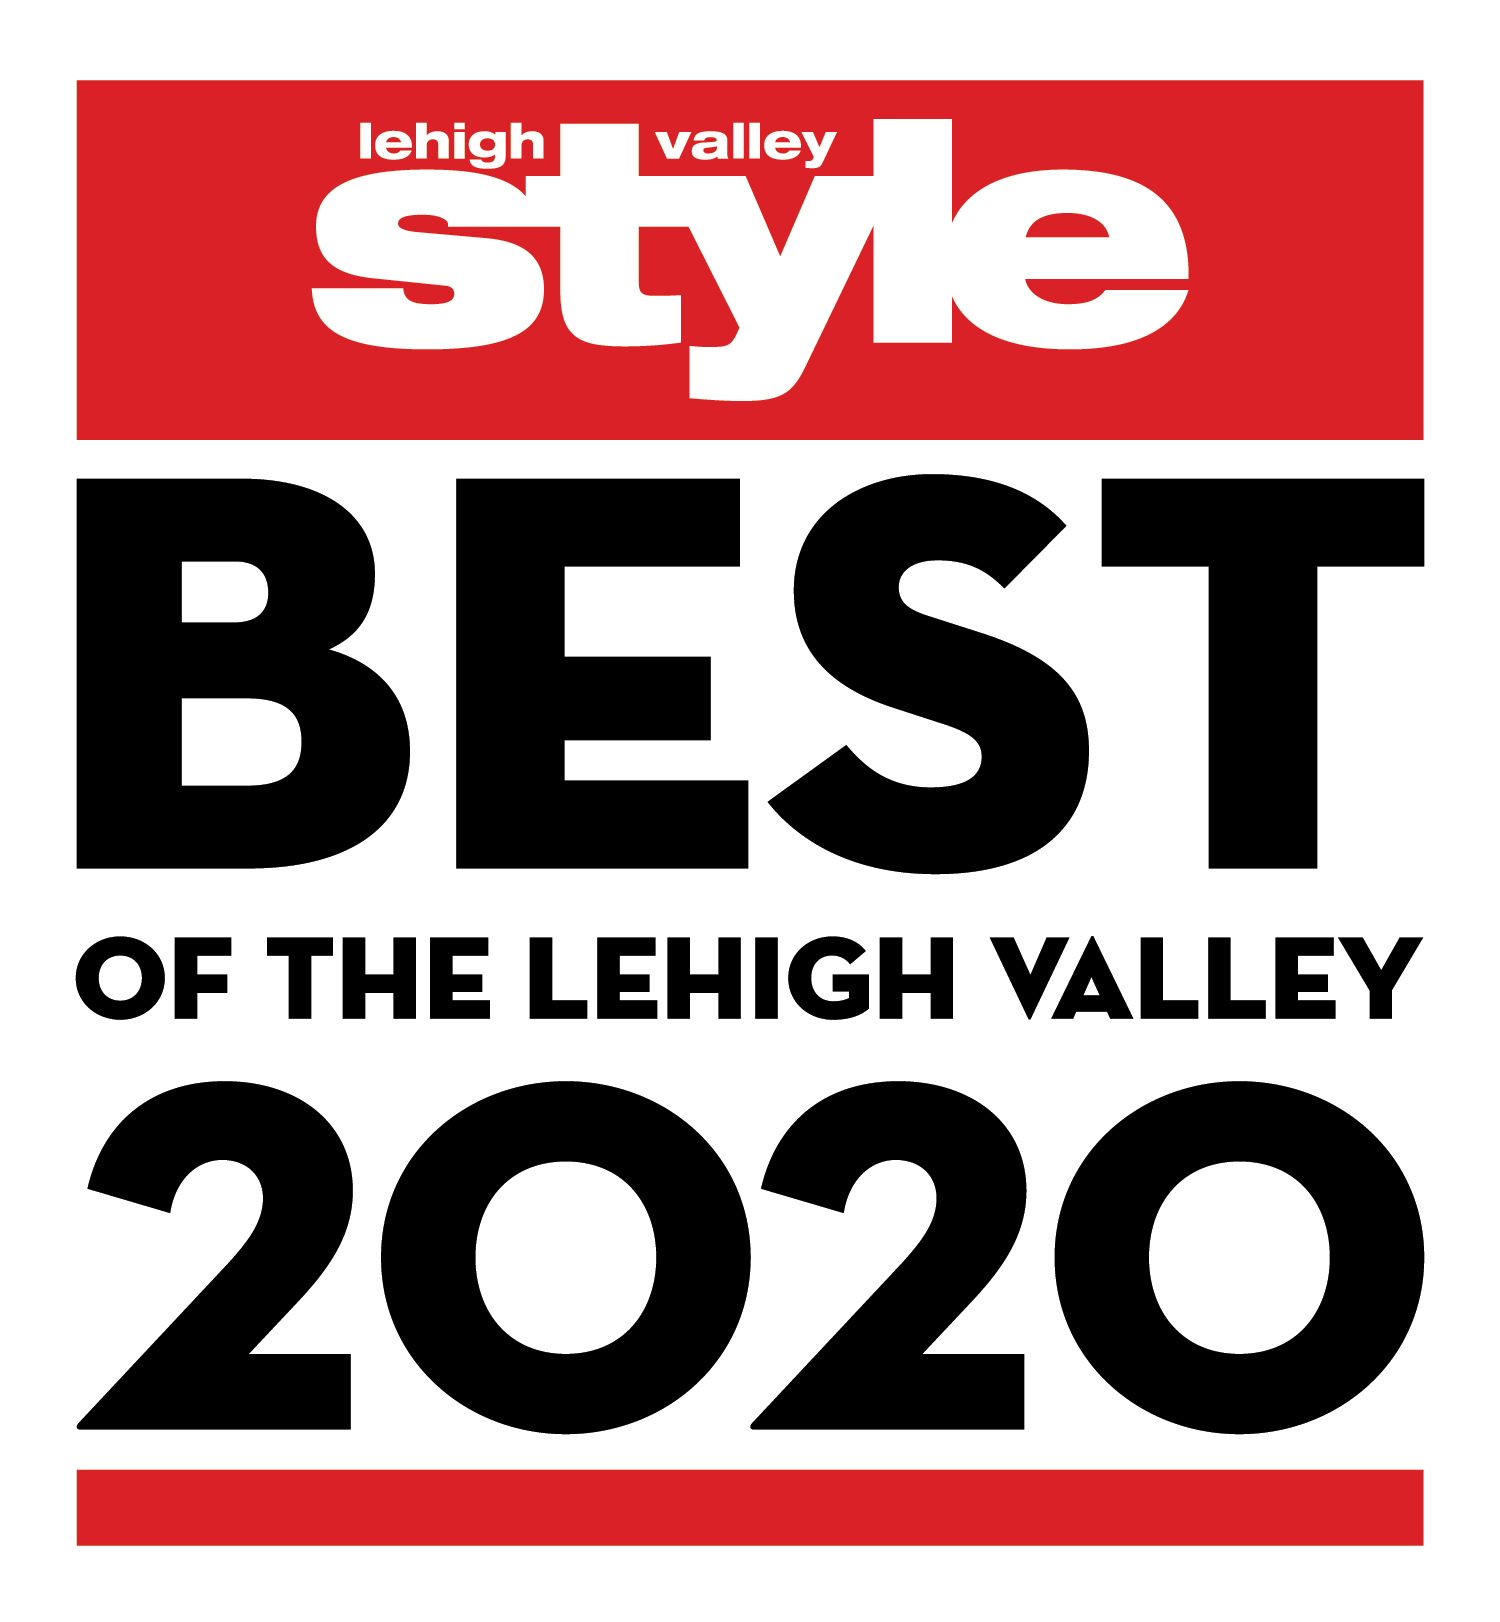 Grims Orchard & Family Farm was recently selected as Best of the Lehigh for Pumpkin Patch for 2020.